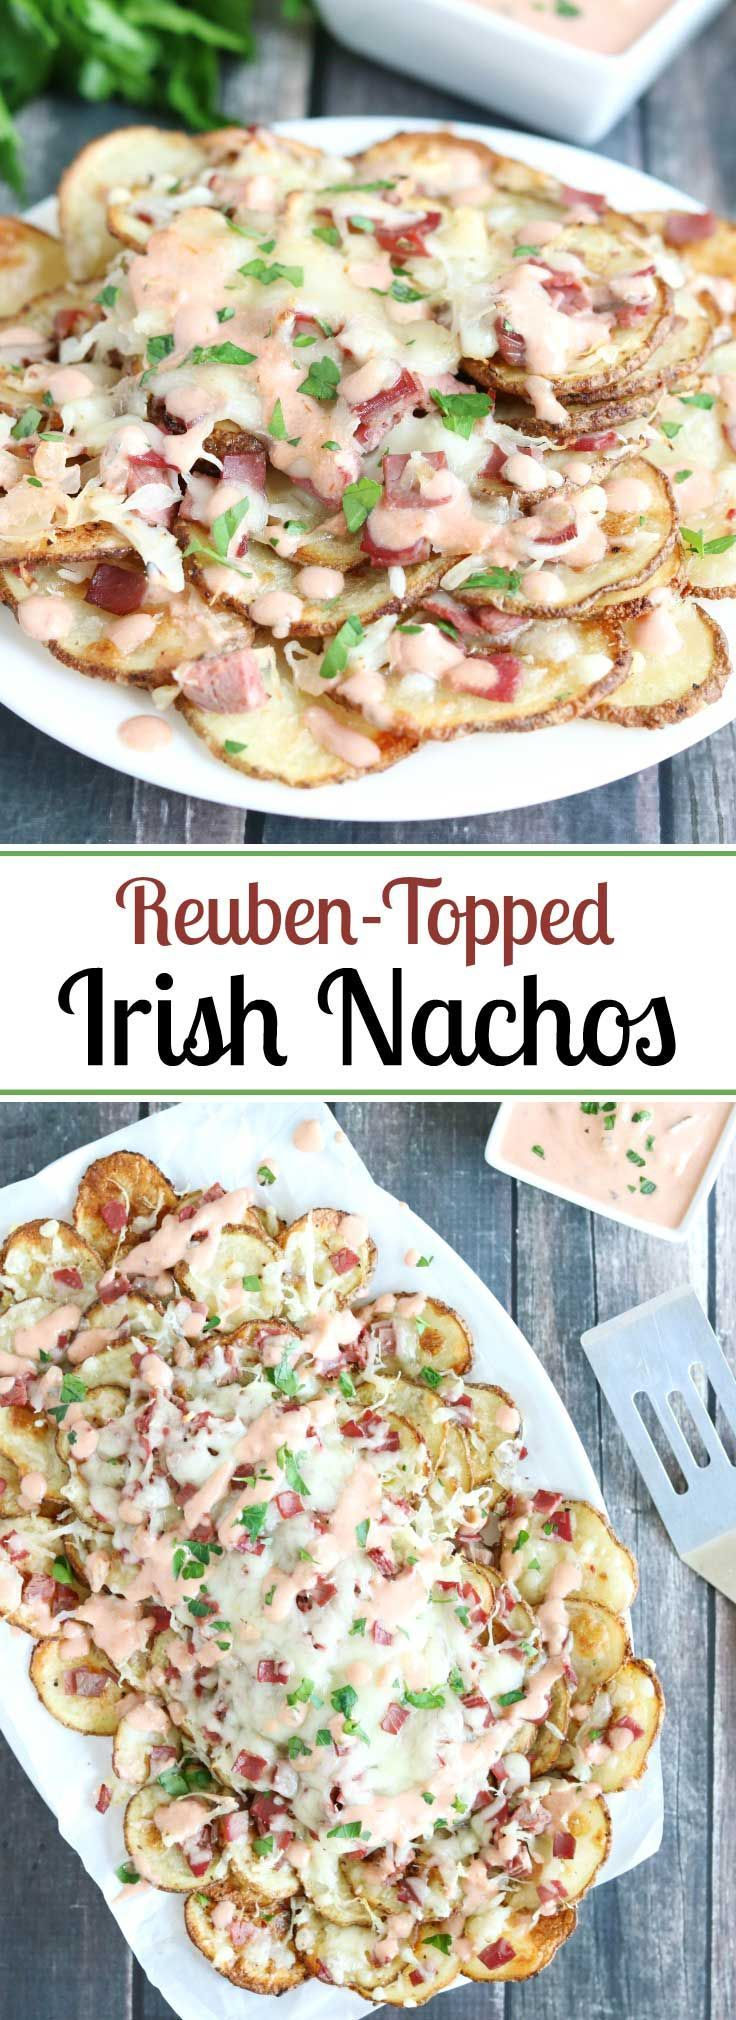 "Seasoned, oven-baked potato chips and classic reuben toppings! These Reuben-Topped Irish Nachos feature all the ever-popular flavors of a reuben sandwich, in an easy ""nacho"" recipe! Easy to make, seriously delicious! A perfect St. Patrick's Day recipe, and also a great game day snack recipe ... or for snacks and appetizers ANY day! Bonus: this Irish Nacho recipe is so much healthier, too! You'll be surprised! 